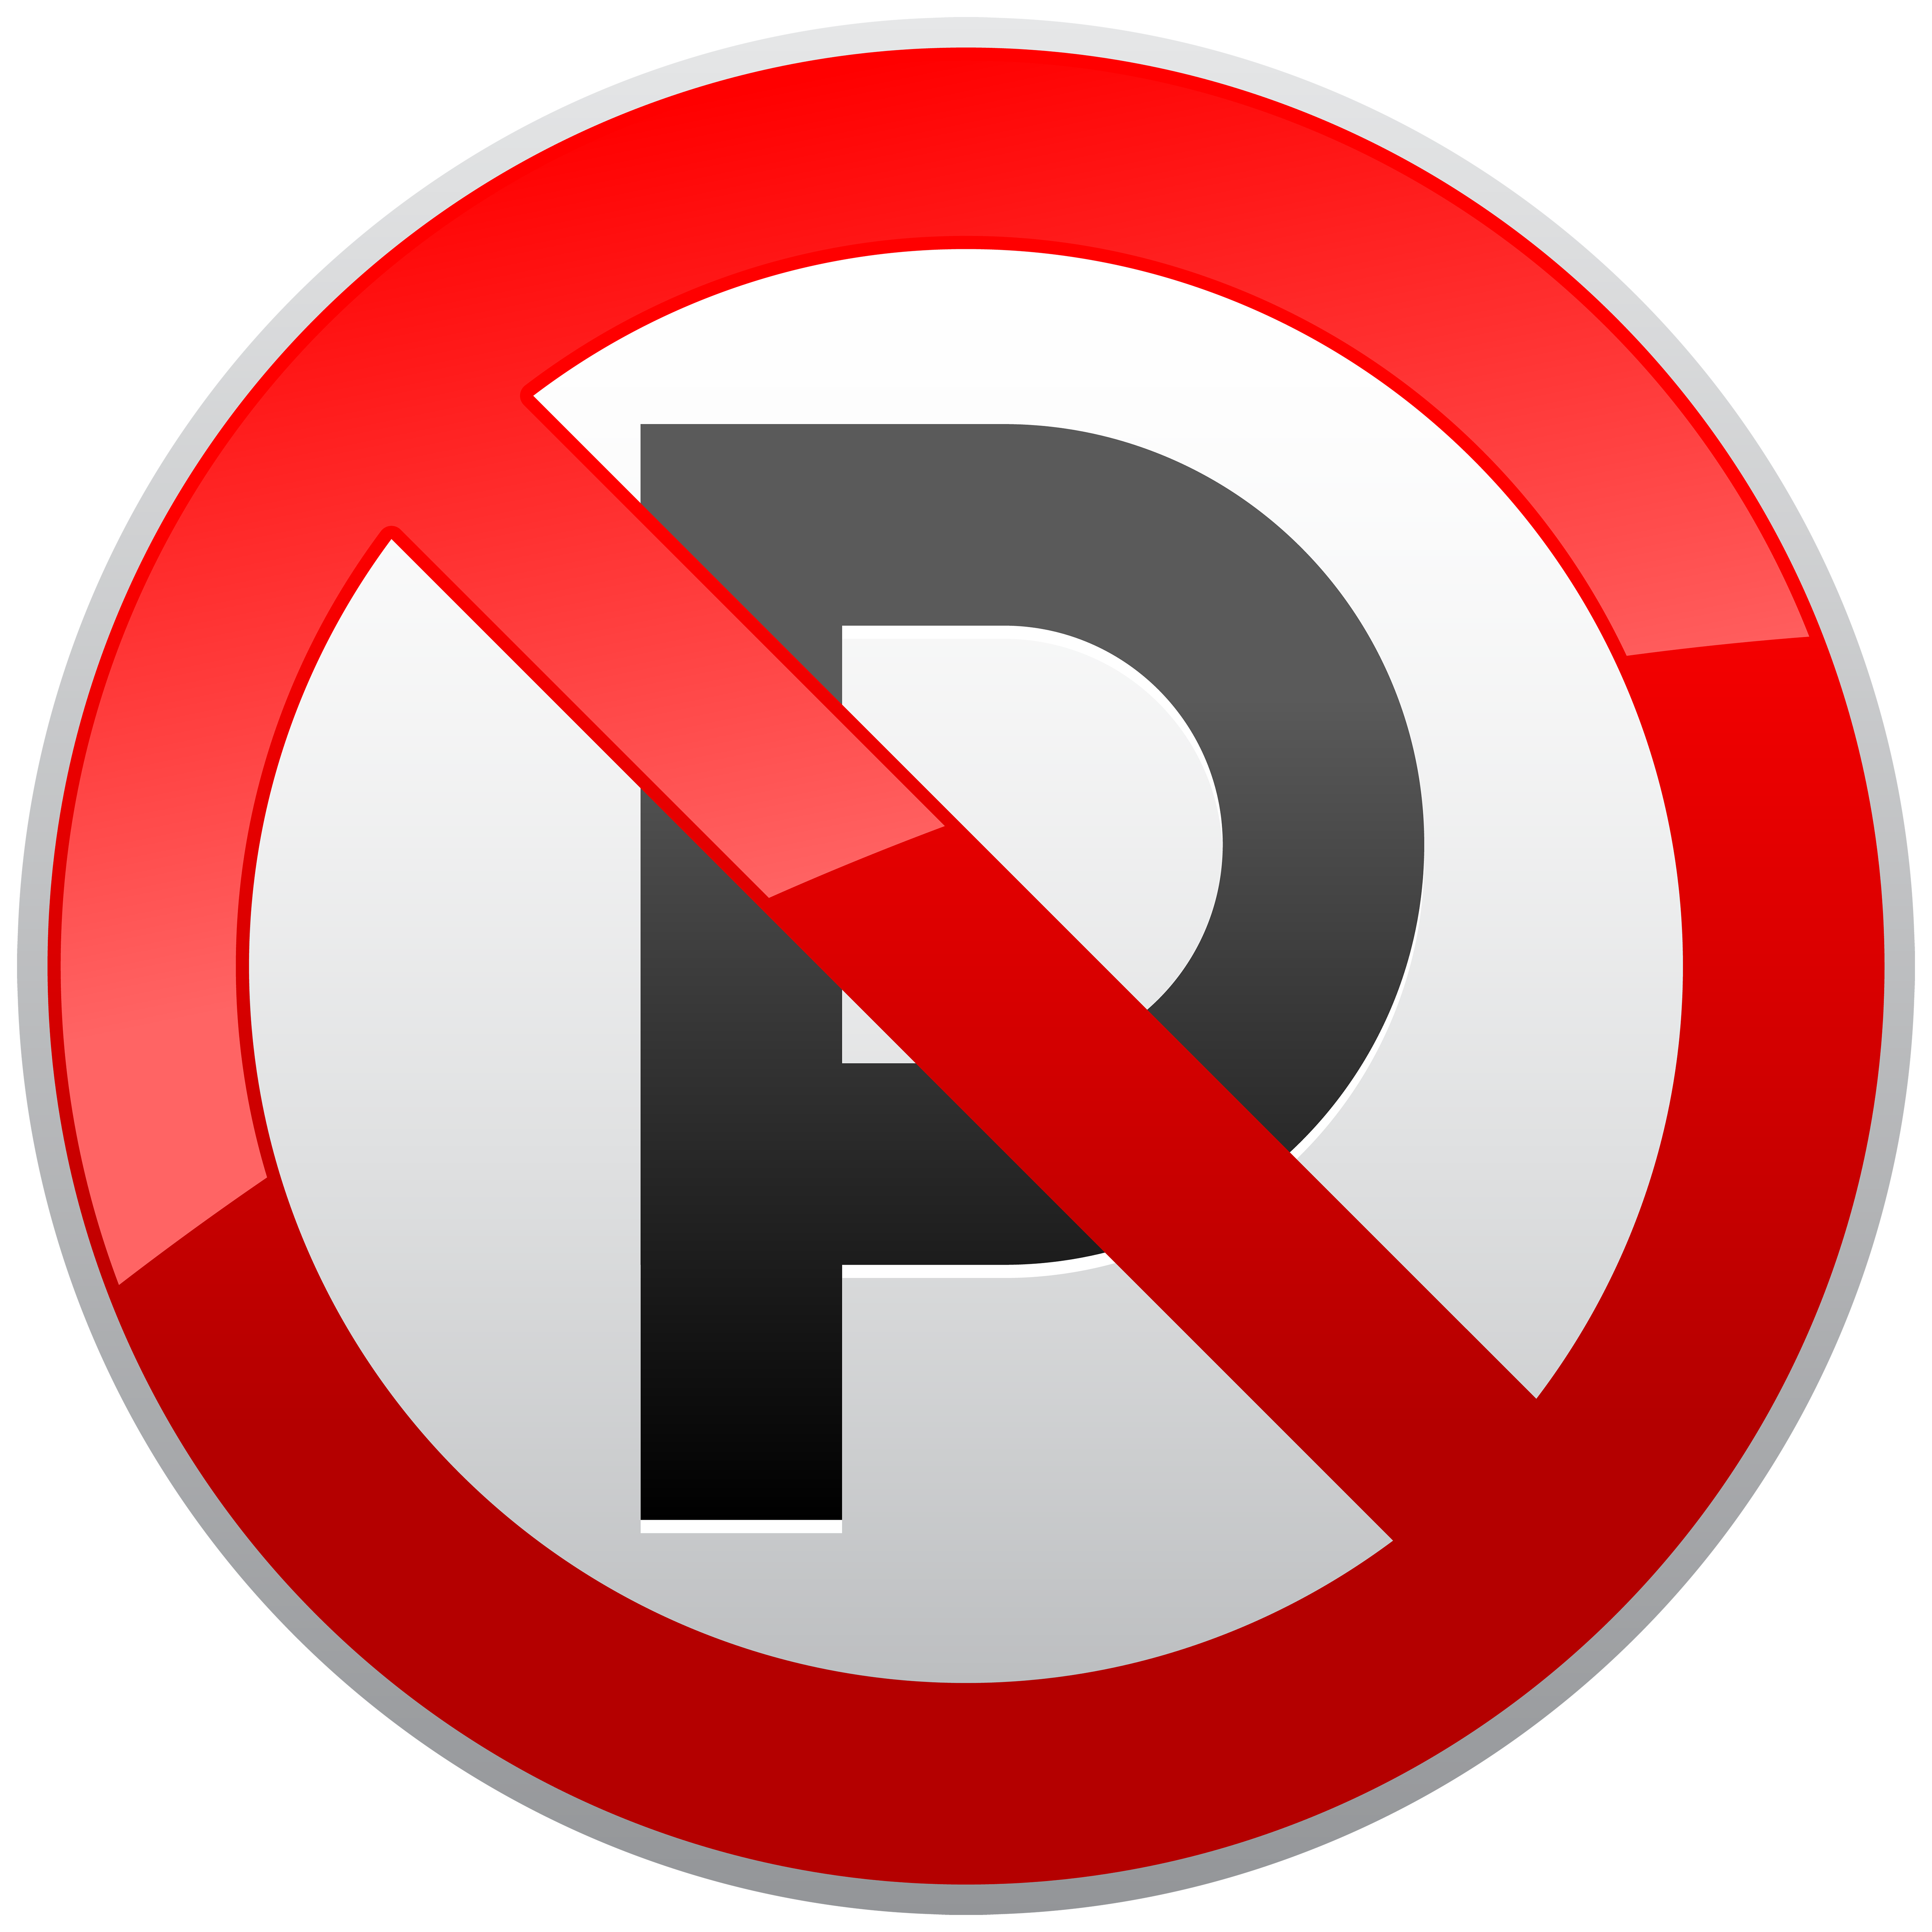 School signs clipart picture royalty free library No Parking Prohibition Sign PNG Clipart - Best WEB Clipart picture royalty free library